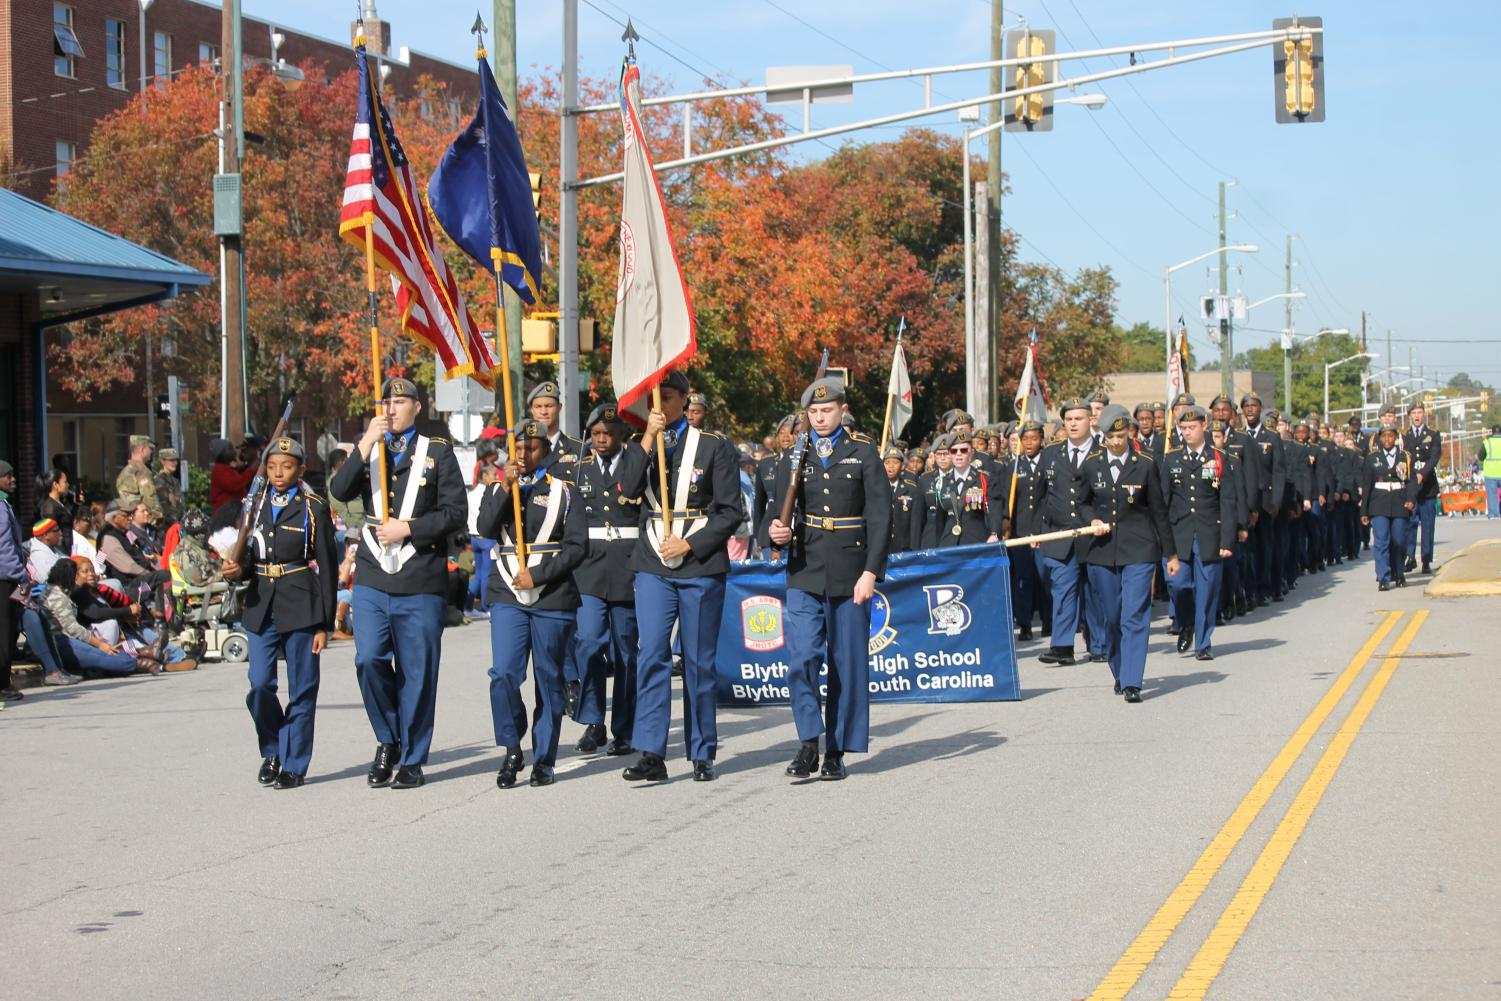 BHS JROTC participates in Veterans Day parade in Columbia, South Carolina.